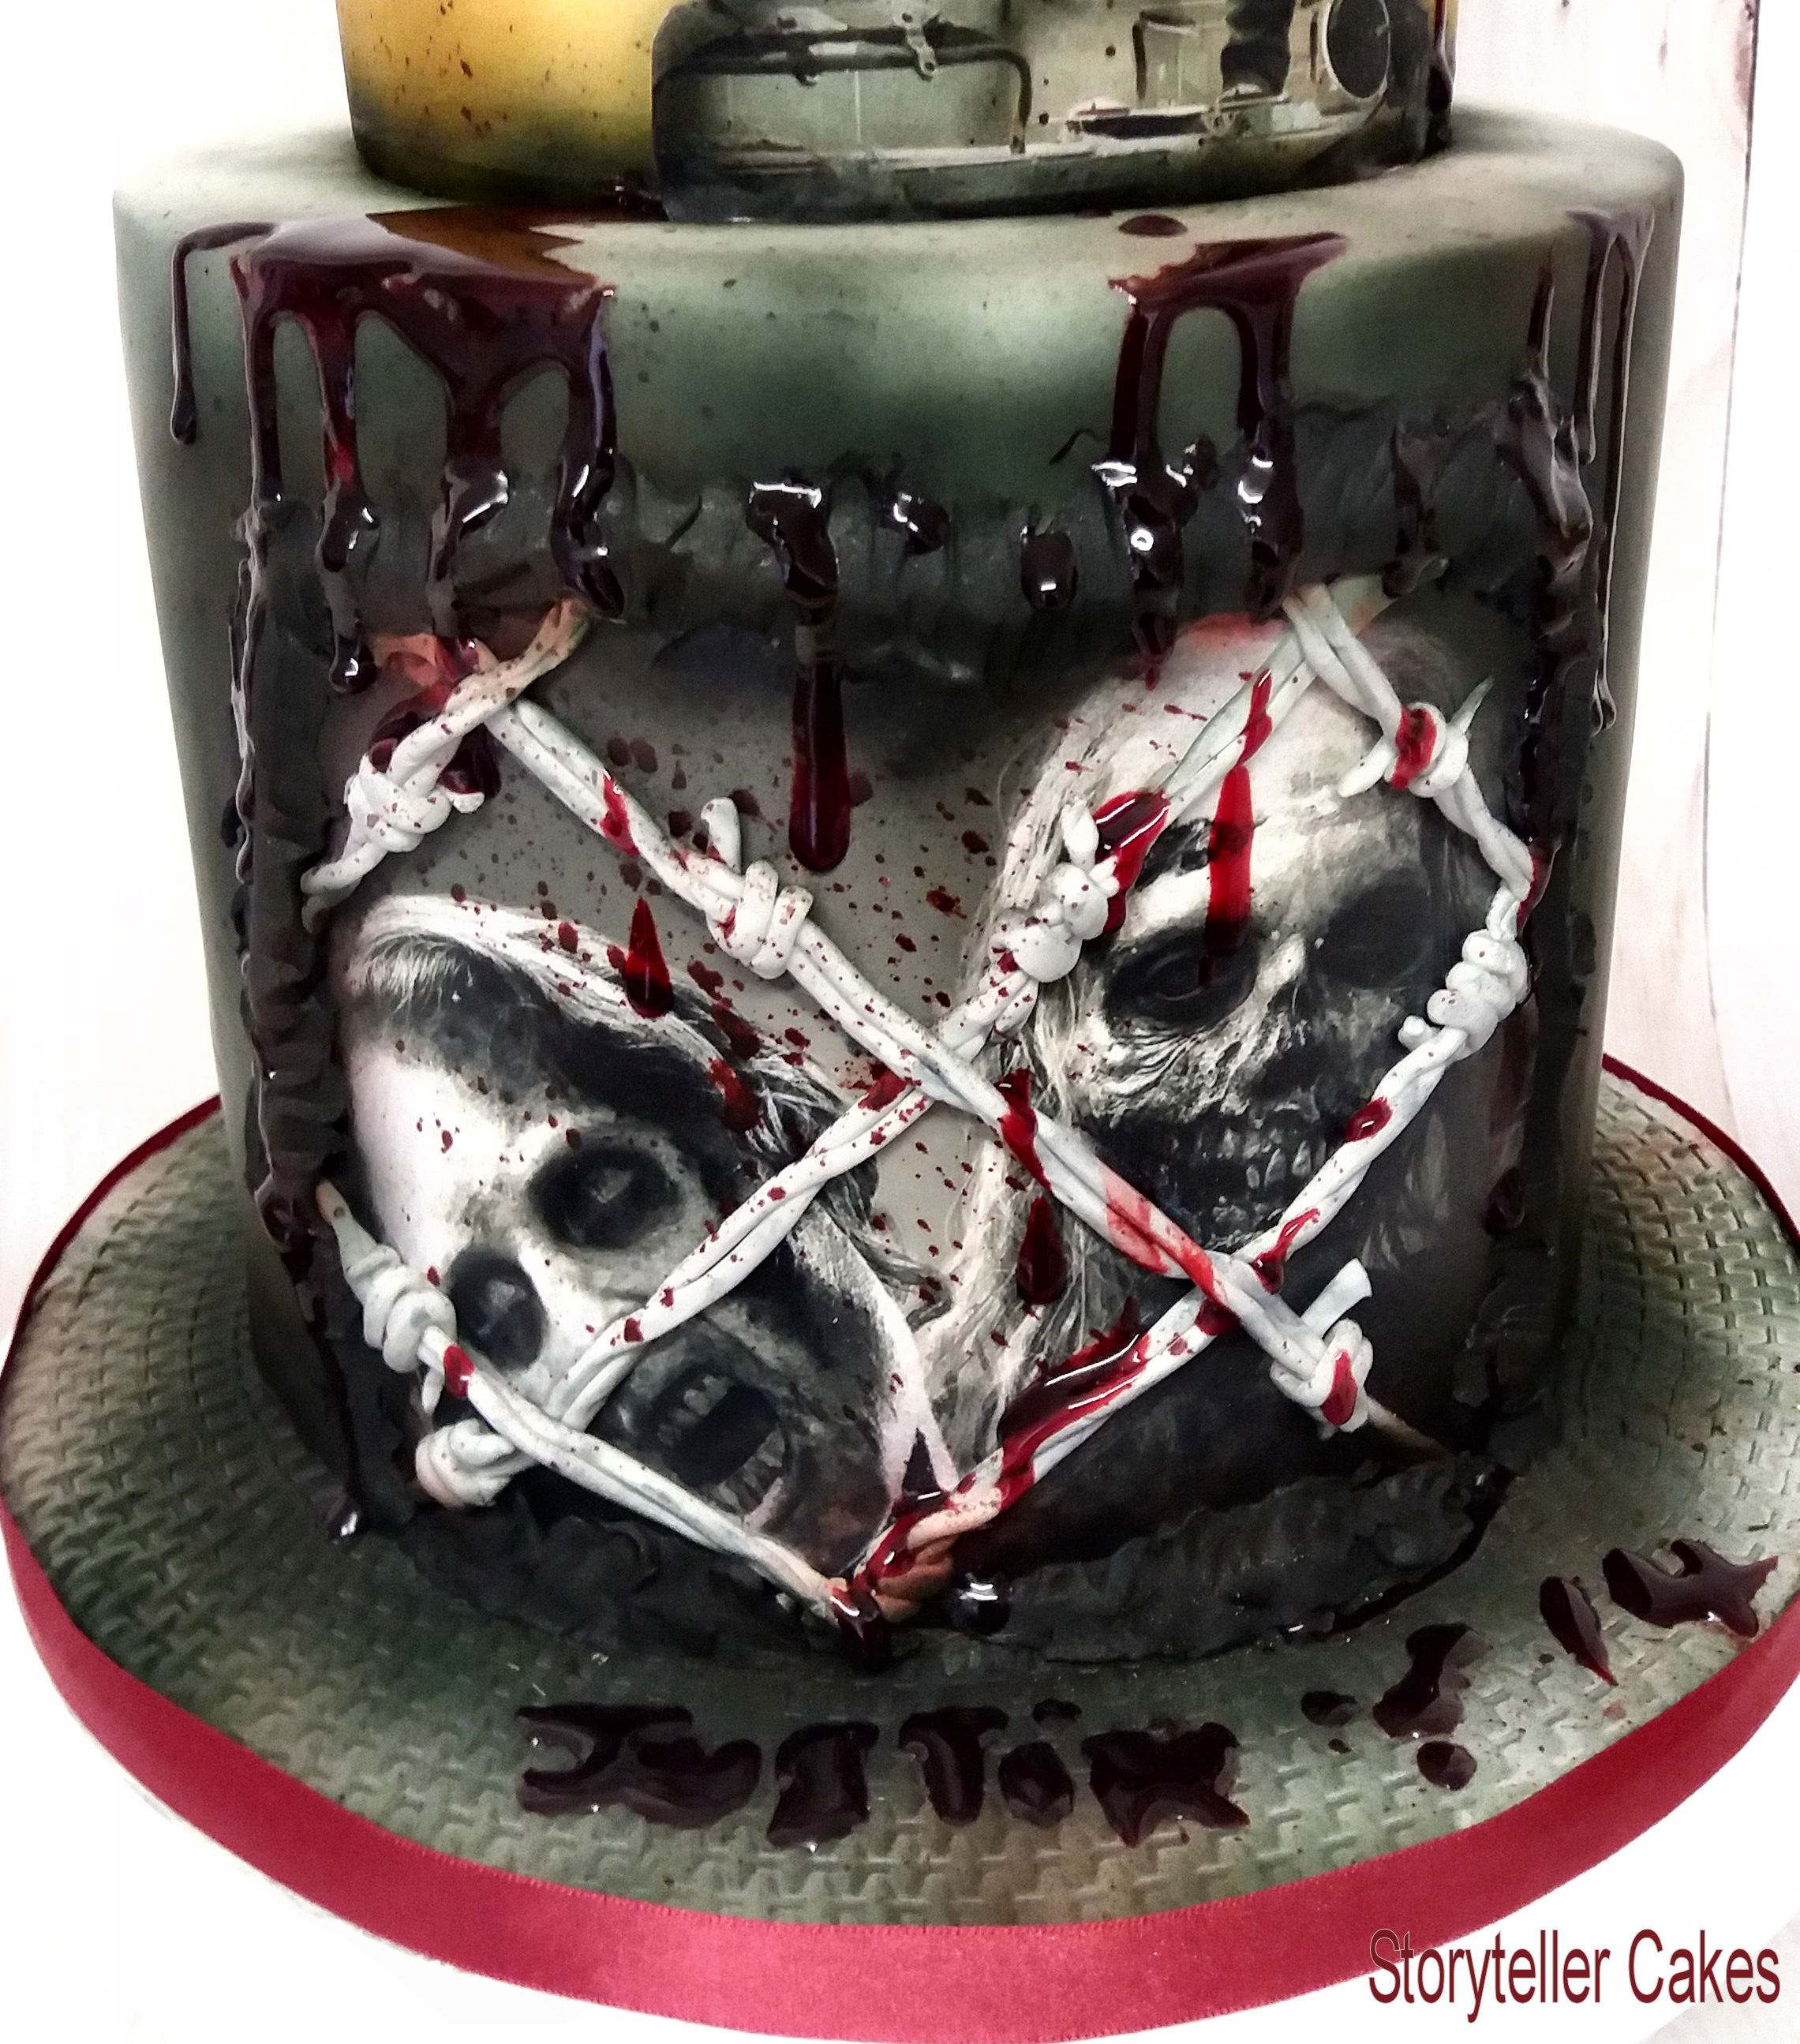 Staggering Walking Dead Cake Adult Birthday Cakes Men Storyteller Cakes Walking Dead Cake Walmart Walking Dead Cake Diy nice food Walking Dead Cake